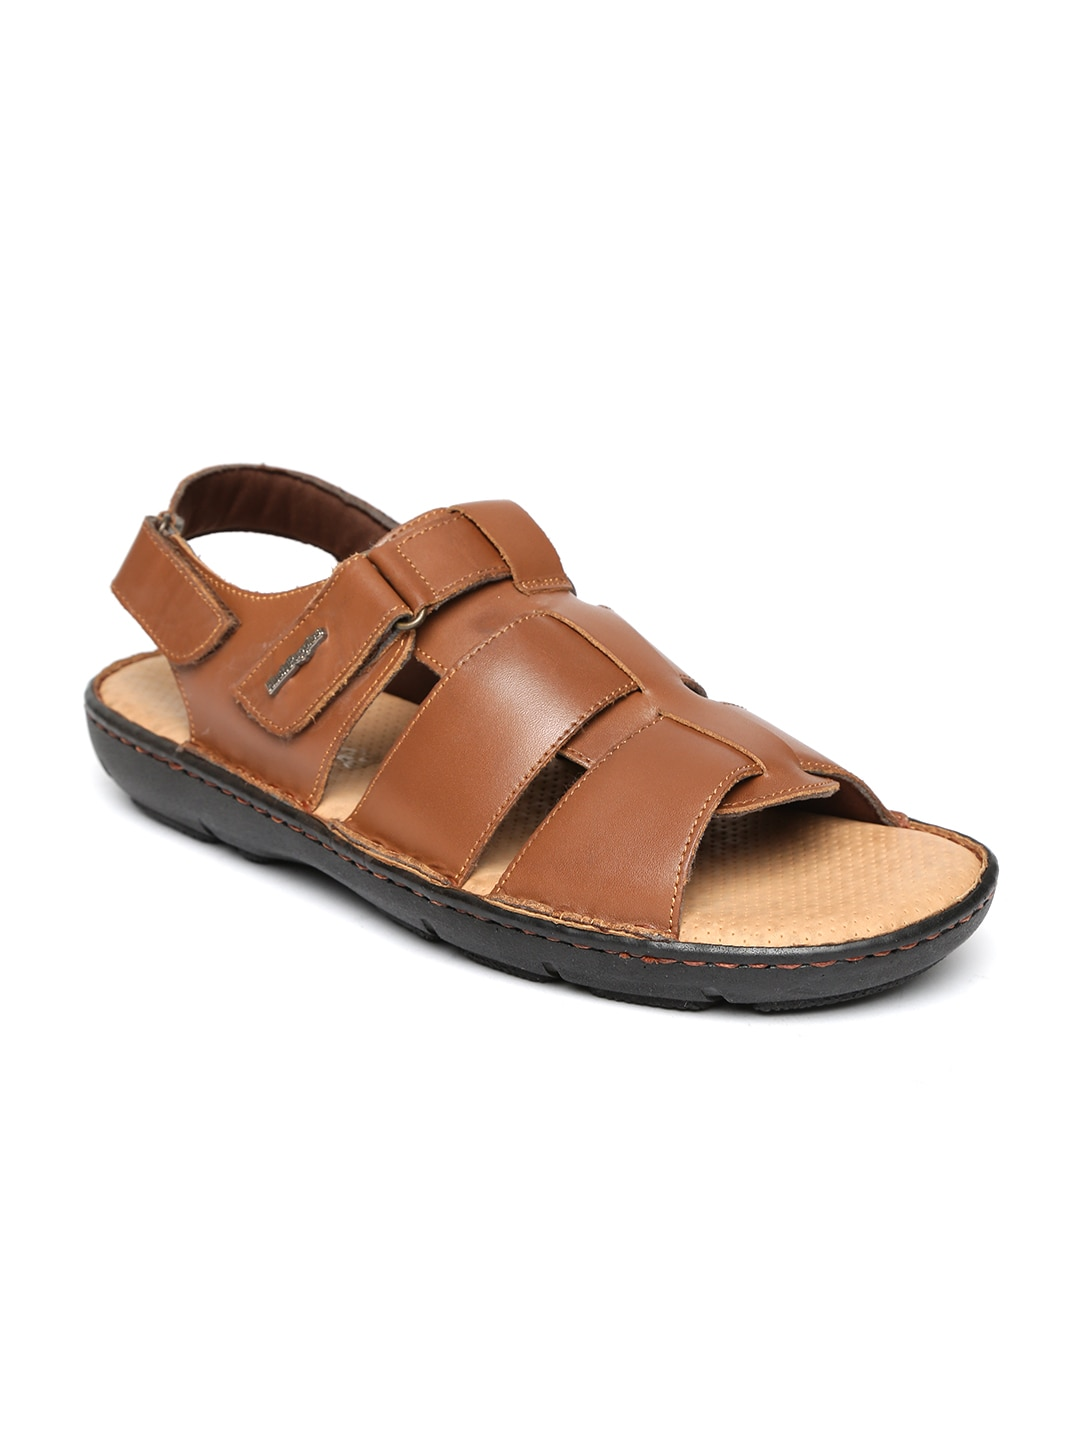 508b95dd2 Bata Hush Puppies Sandal - Buy Bata Hush Puppies Sandal online in India